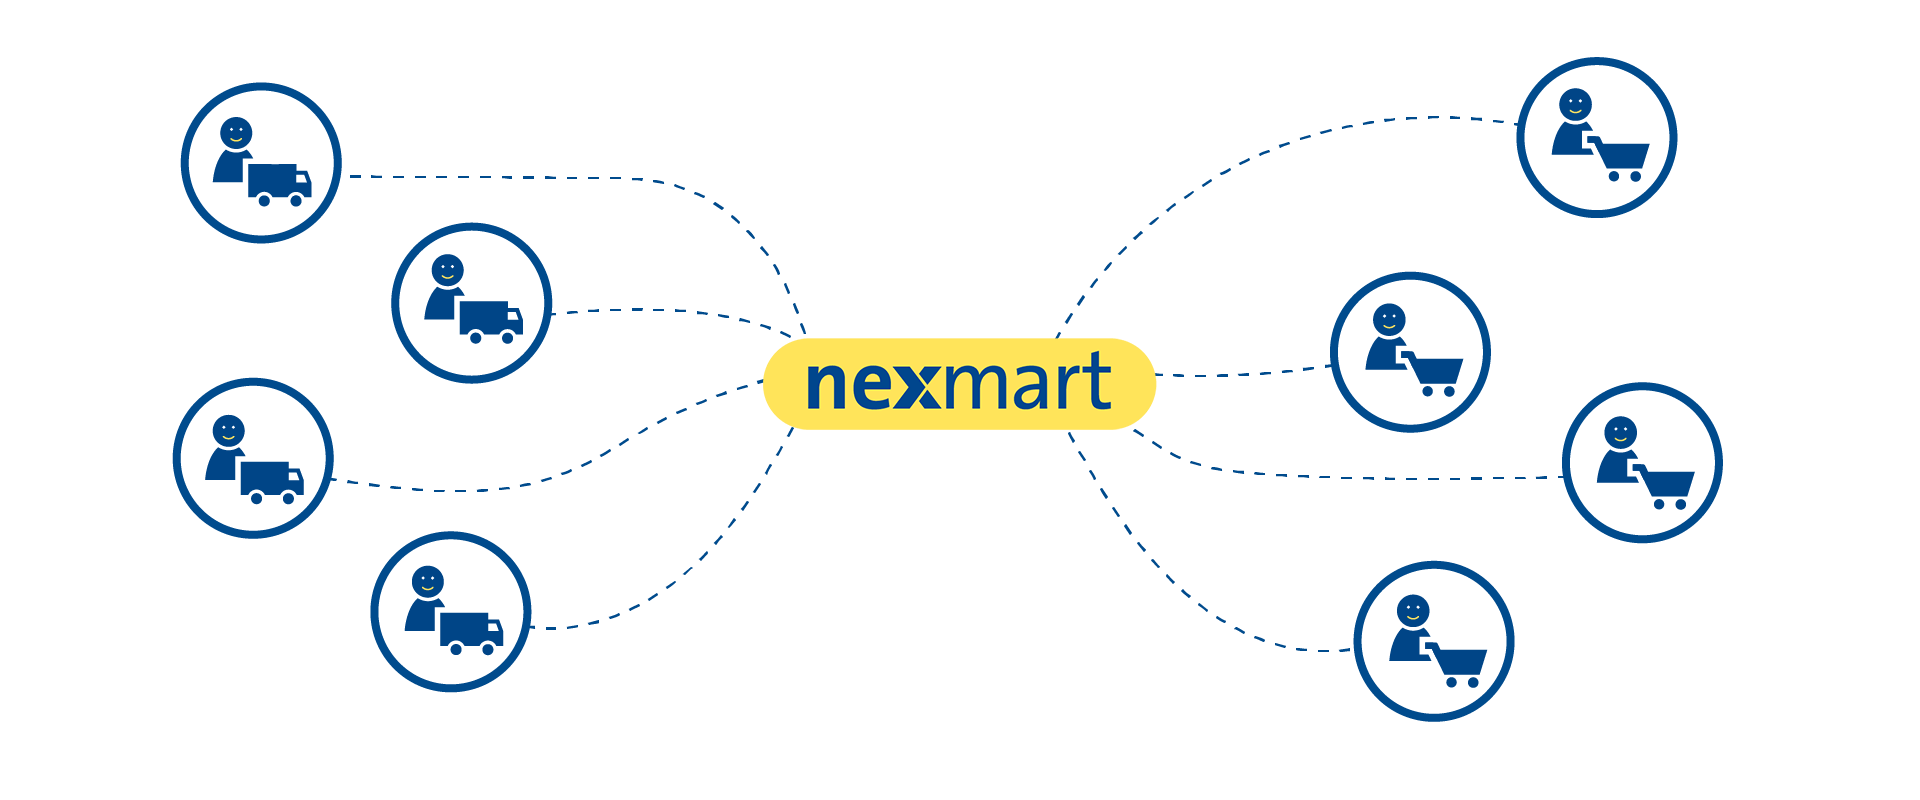 Processes with nexmart